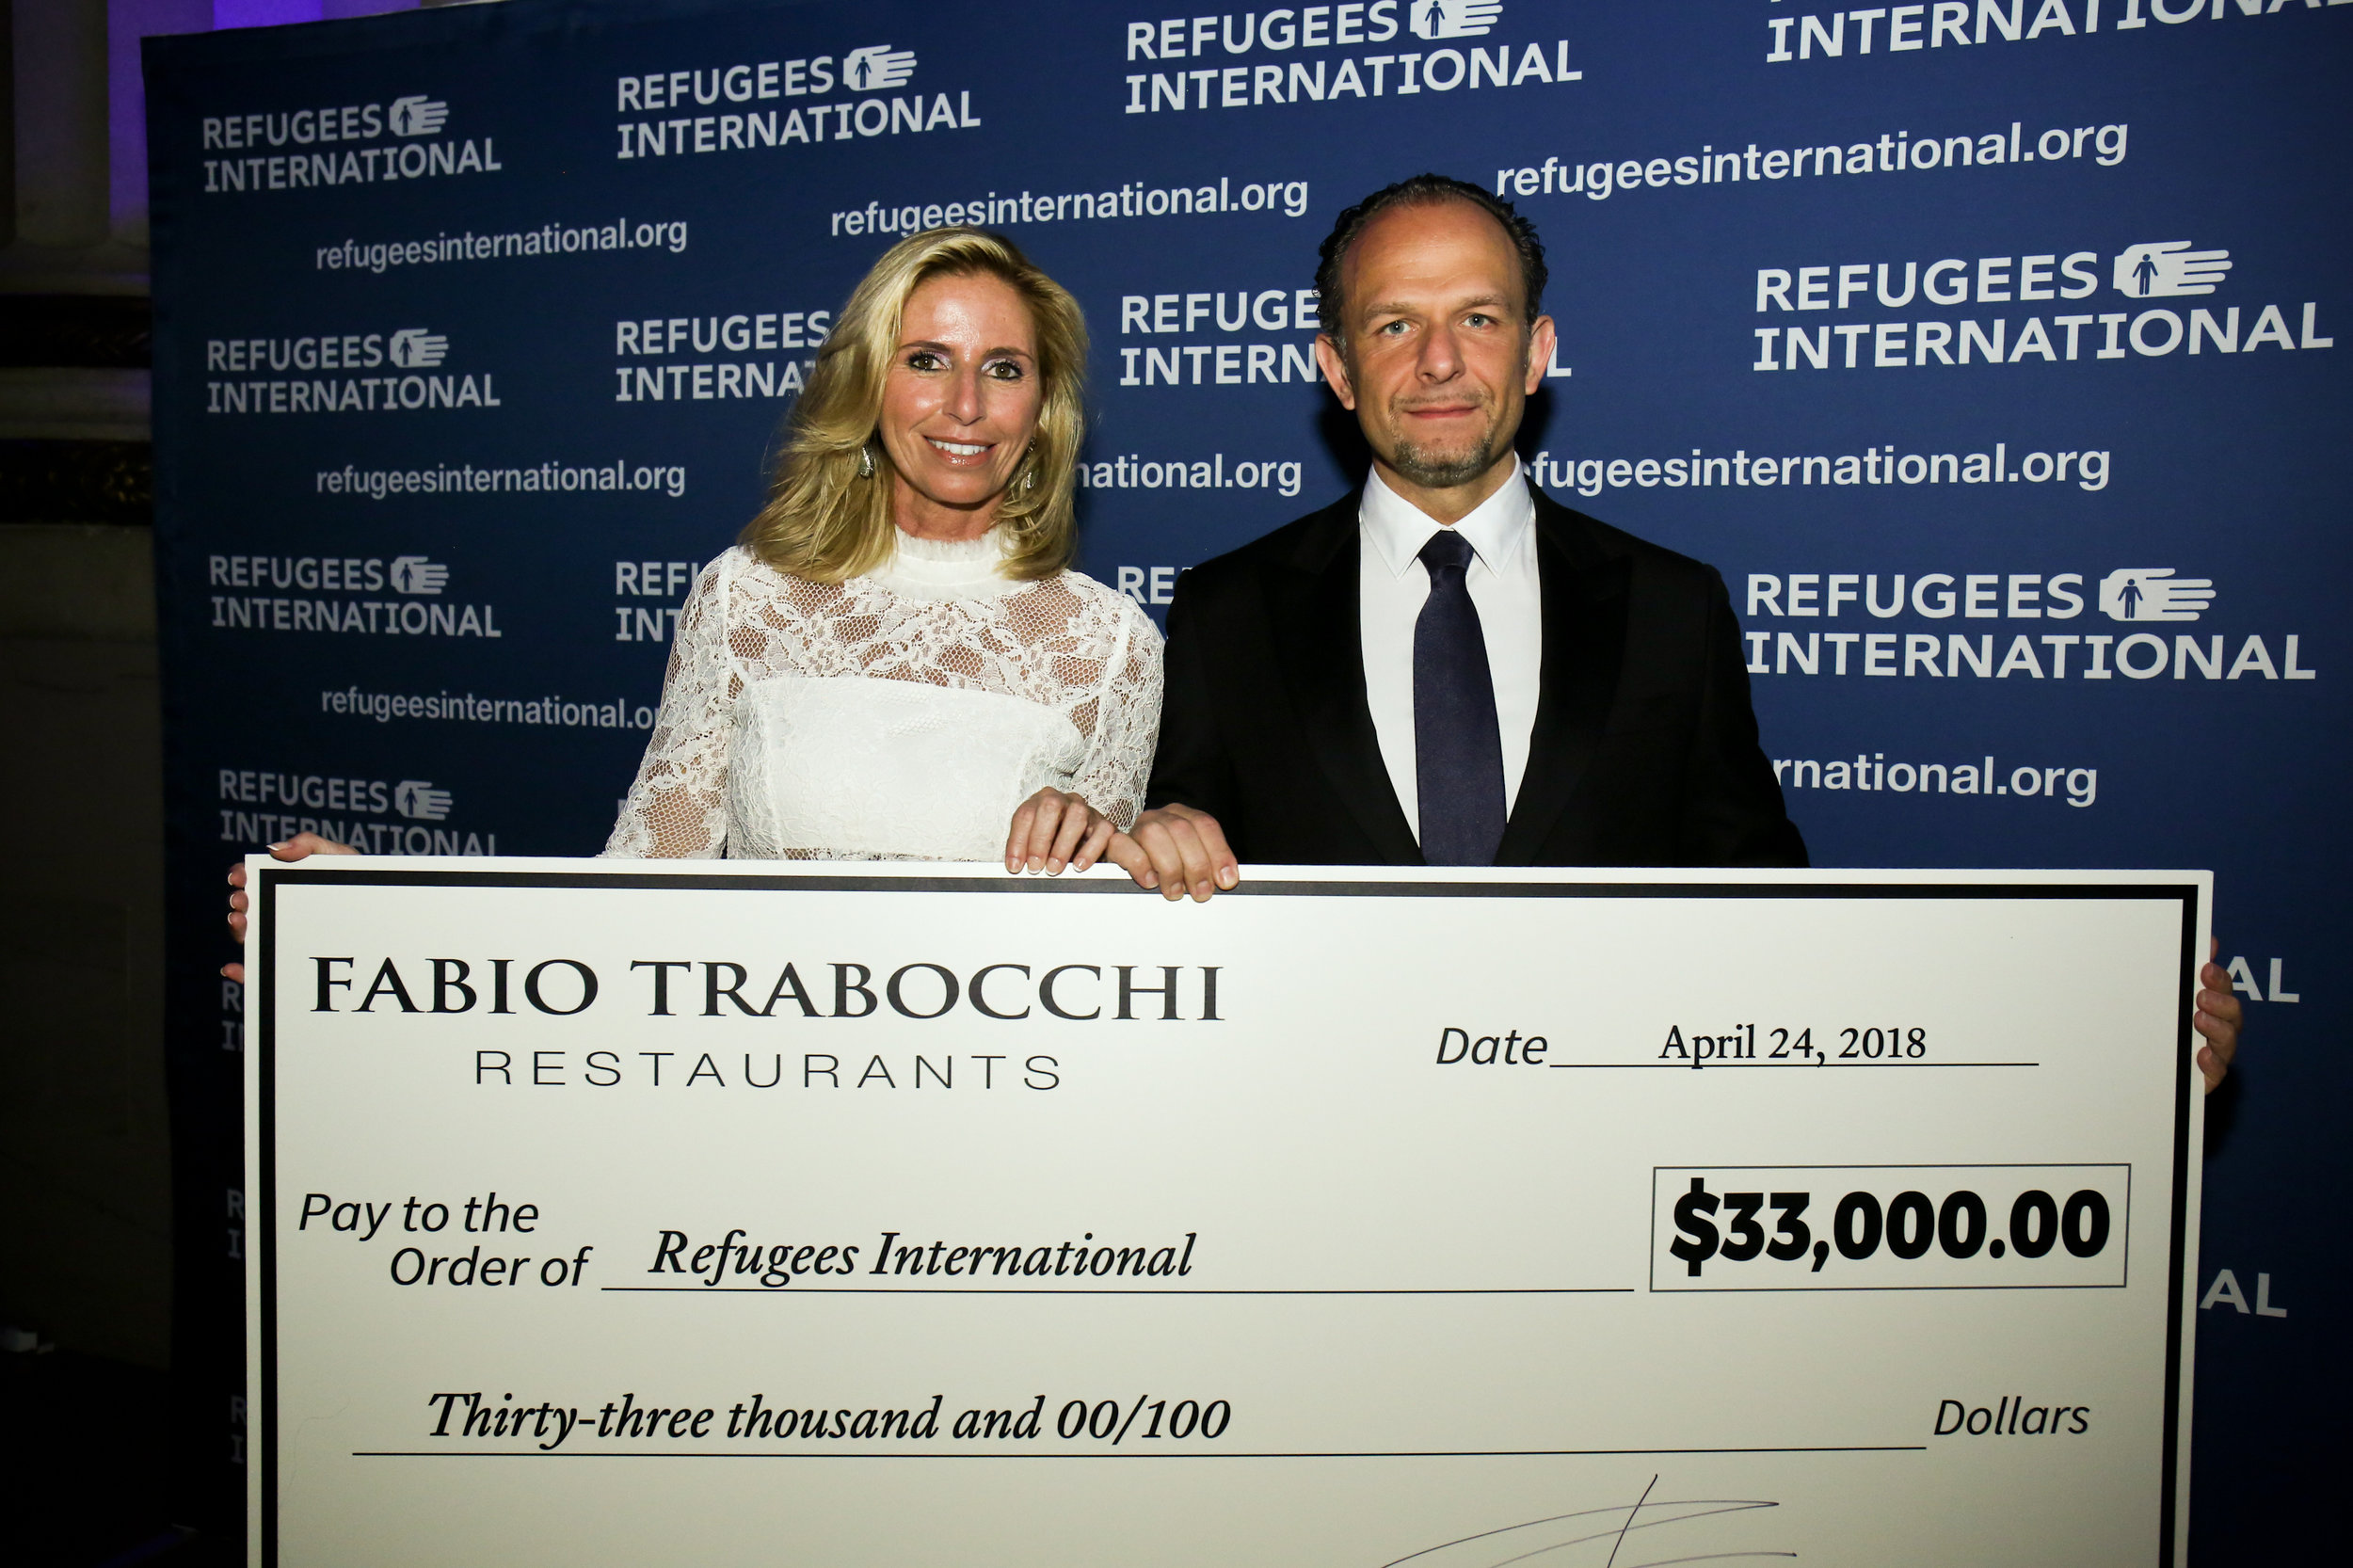 Maria and Fabio Trabocchi present their generous gift to Refugees International